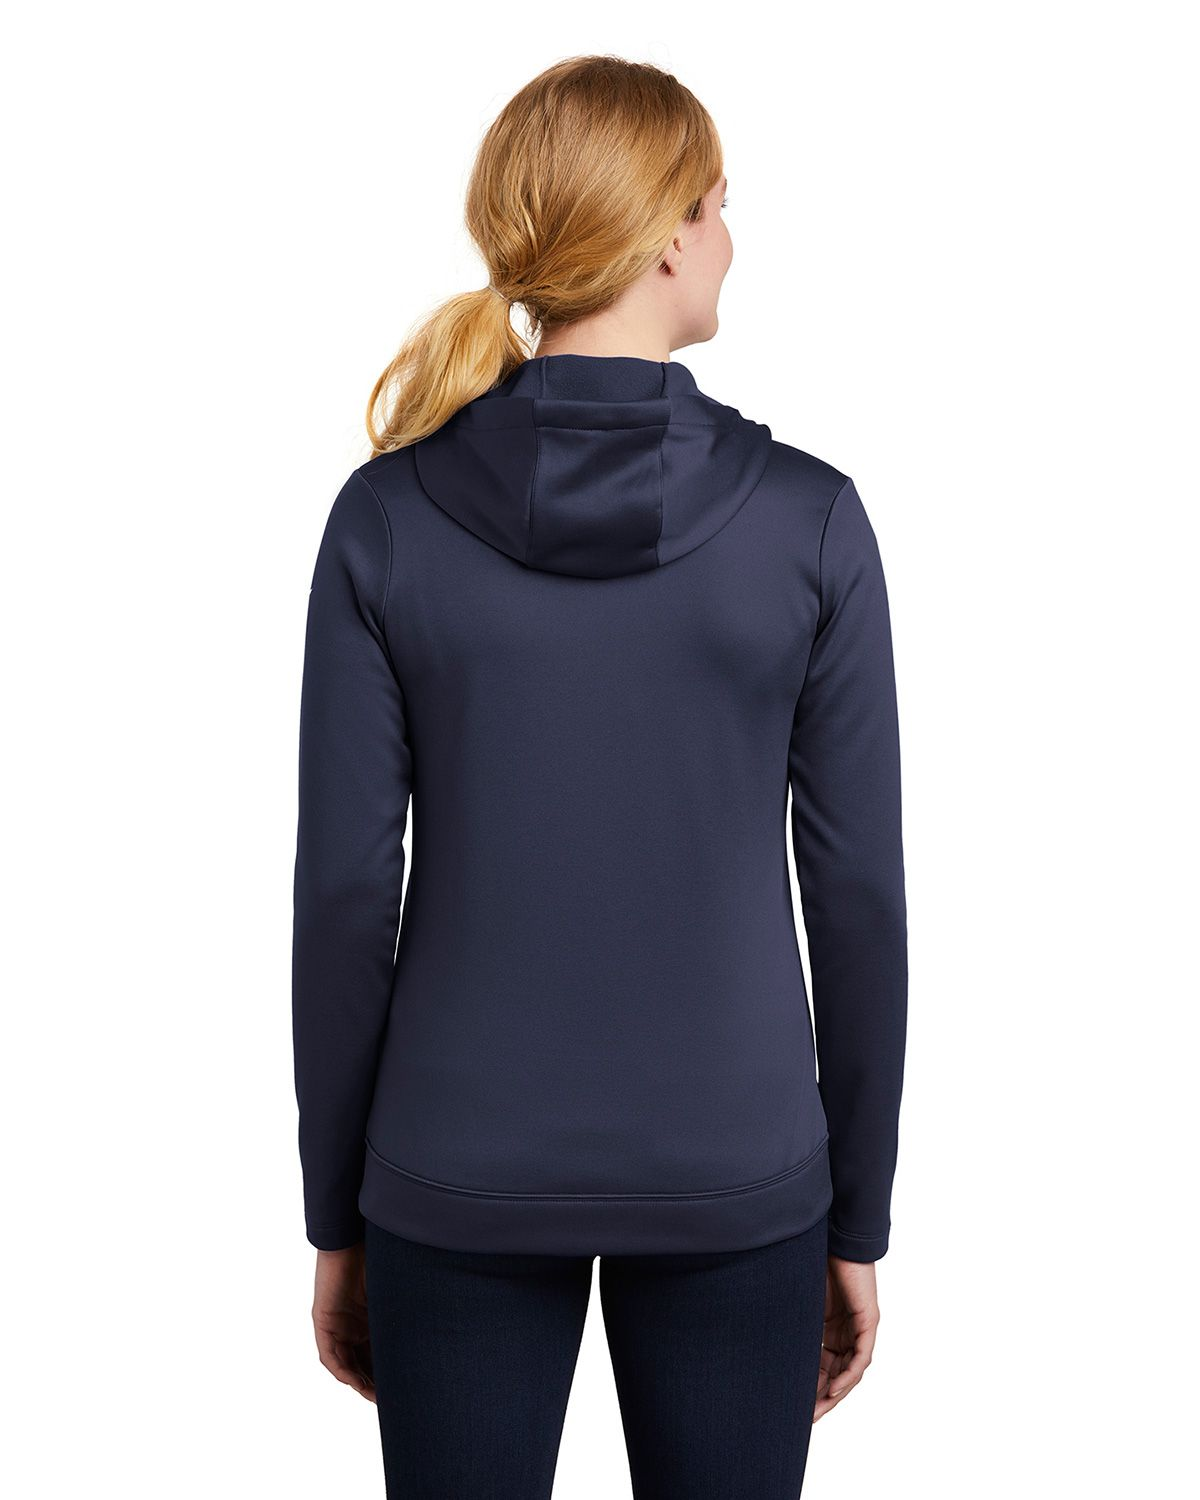 Nike Golf Nkah6264 Ladies Therma Fit Full Zip Fleece Hoodie Hood is lined with mesh. nike golf nkah6264 women s therma fit full zip fleece hoodie